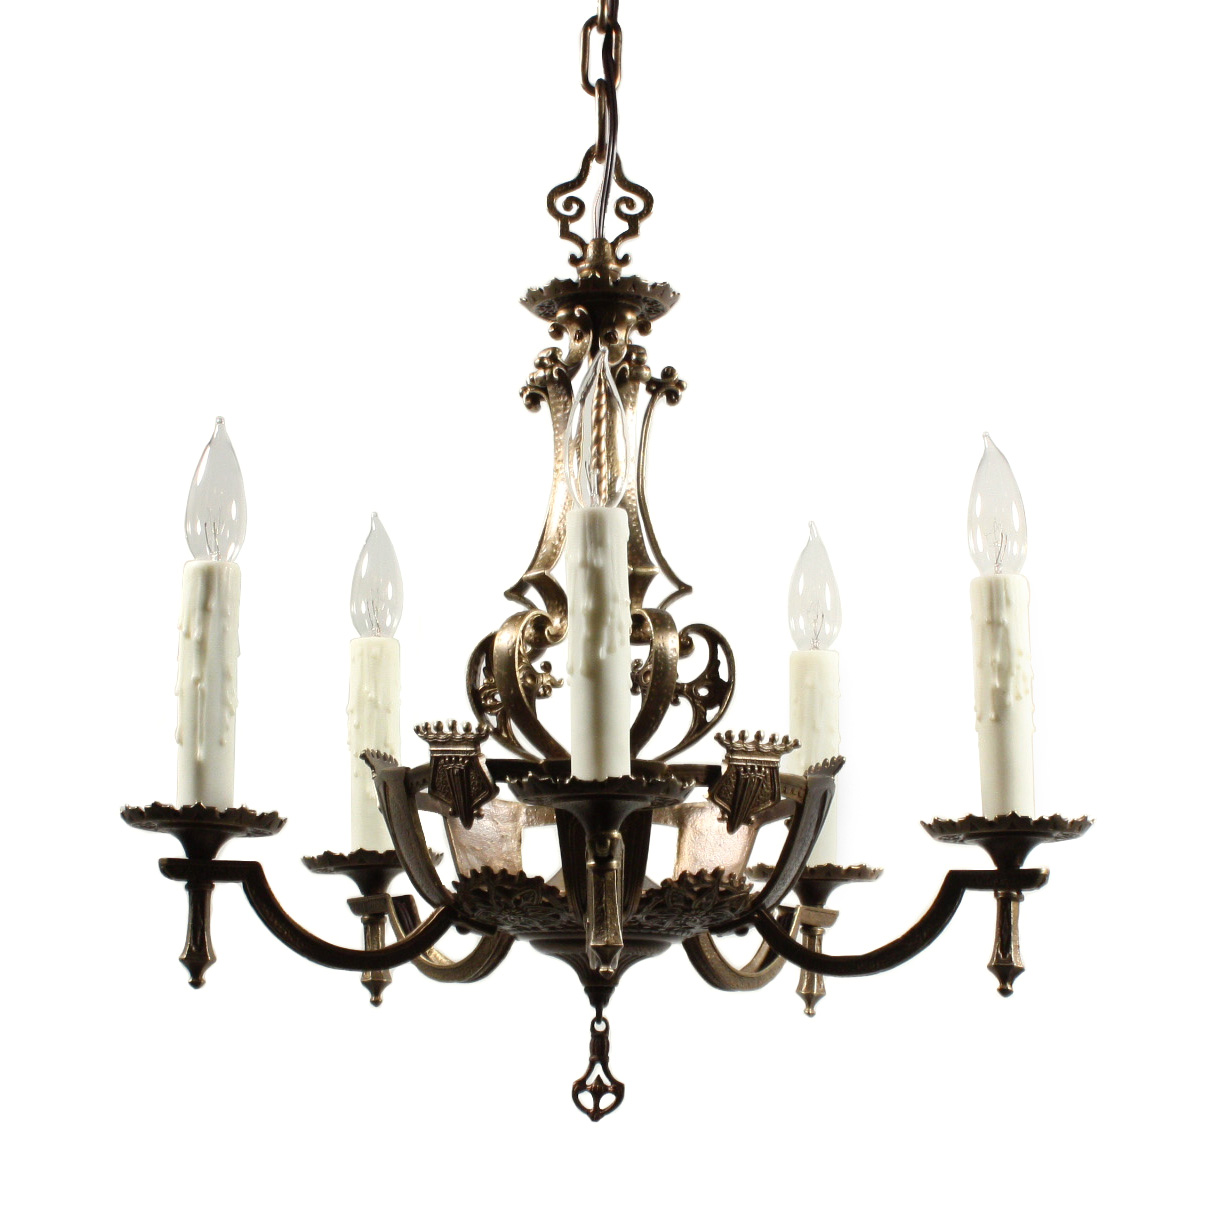 Antique Chandeliers For Sale Home Design Mannahatta Us